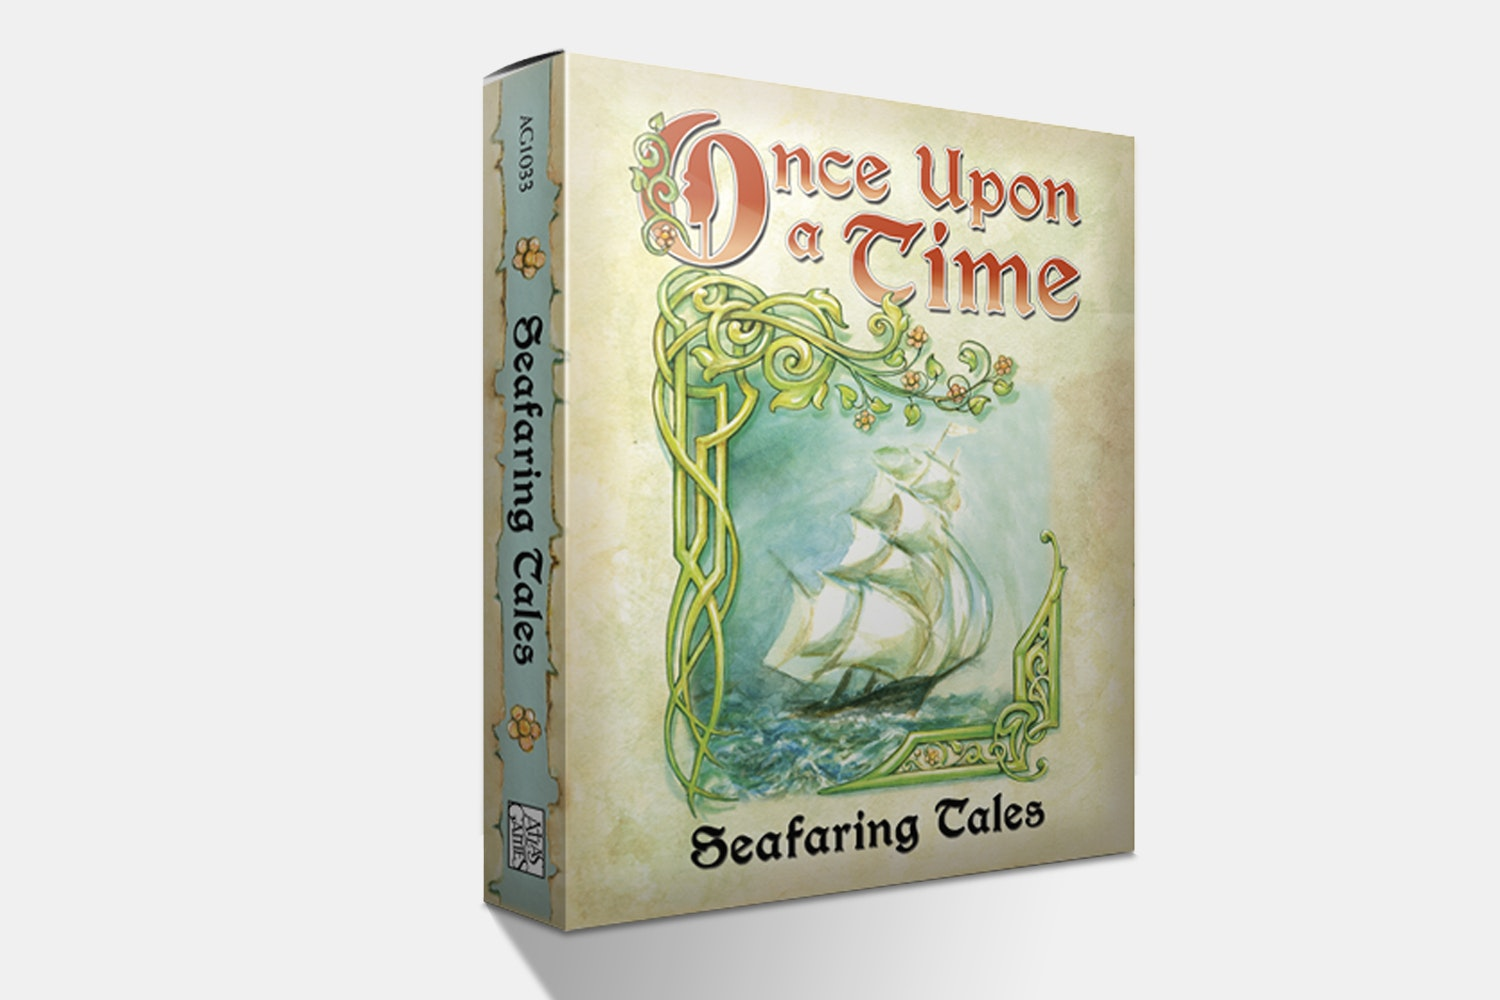 Once Upon a Time (Seafaring Tales)